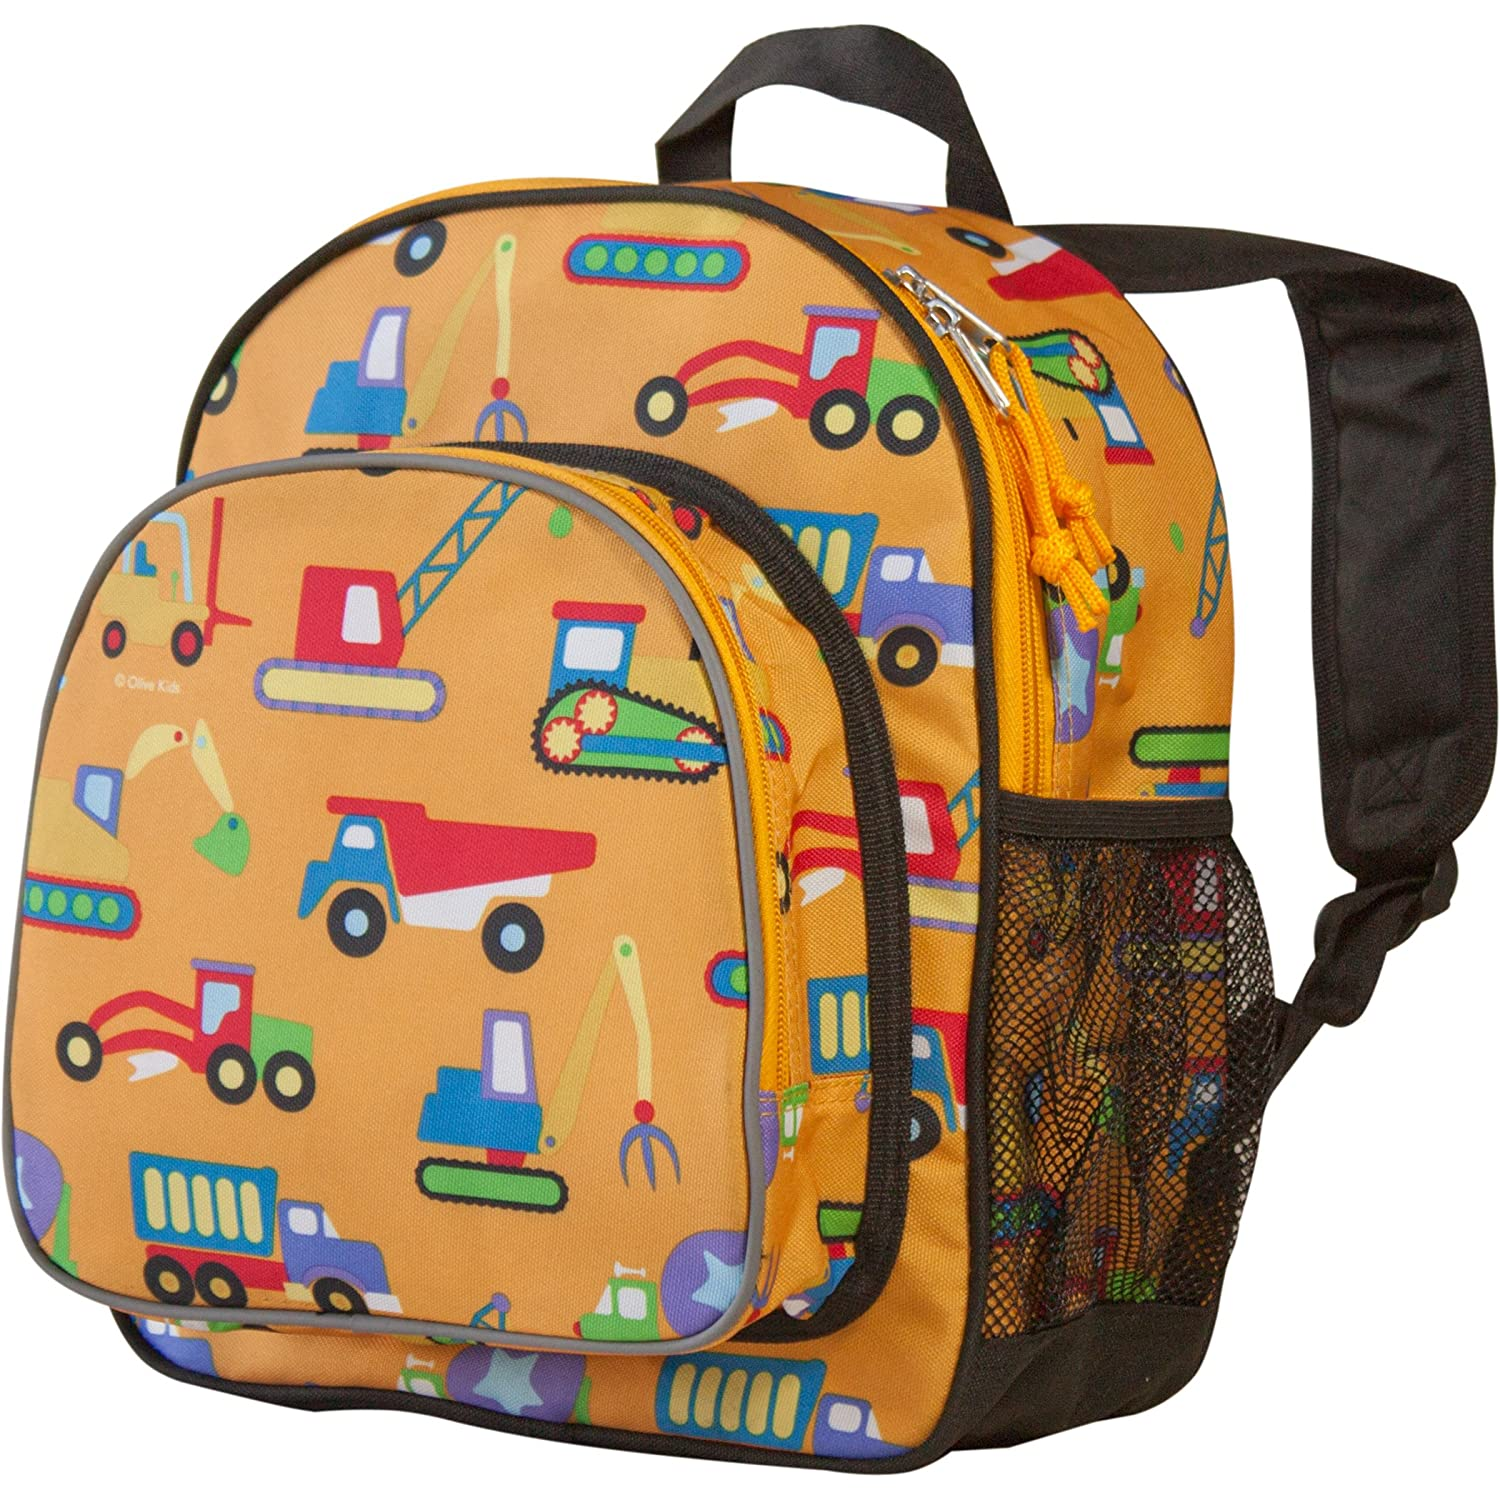 Wildkin Toddler Pack 'n Snack Backpack Construction